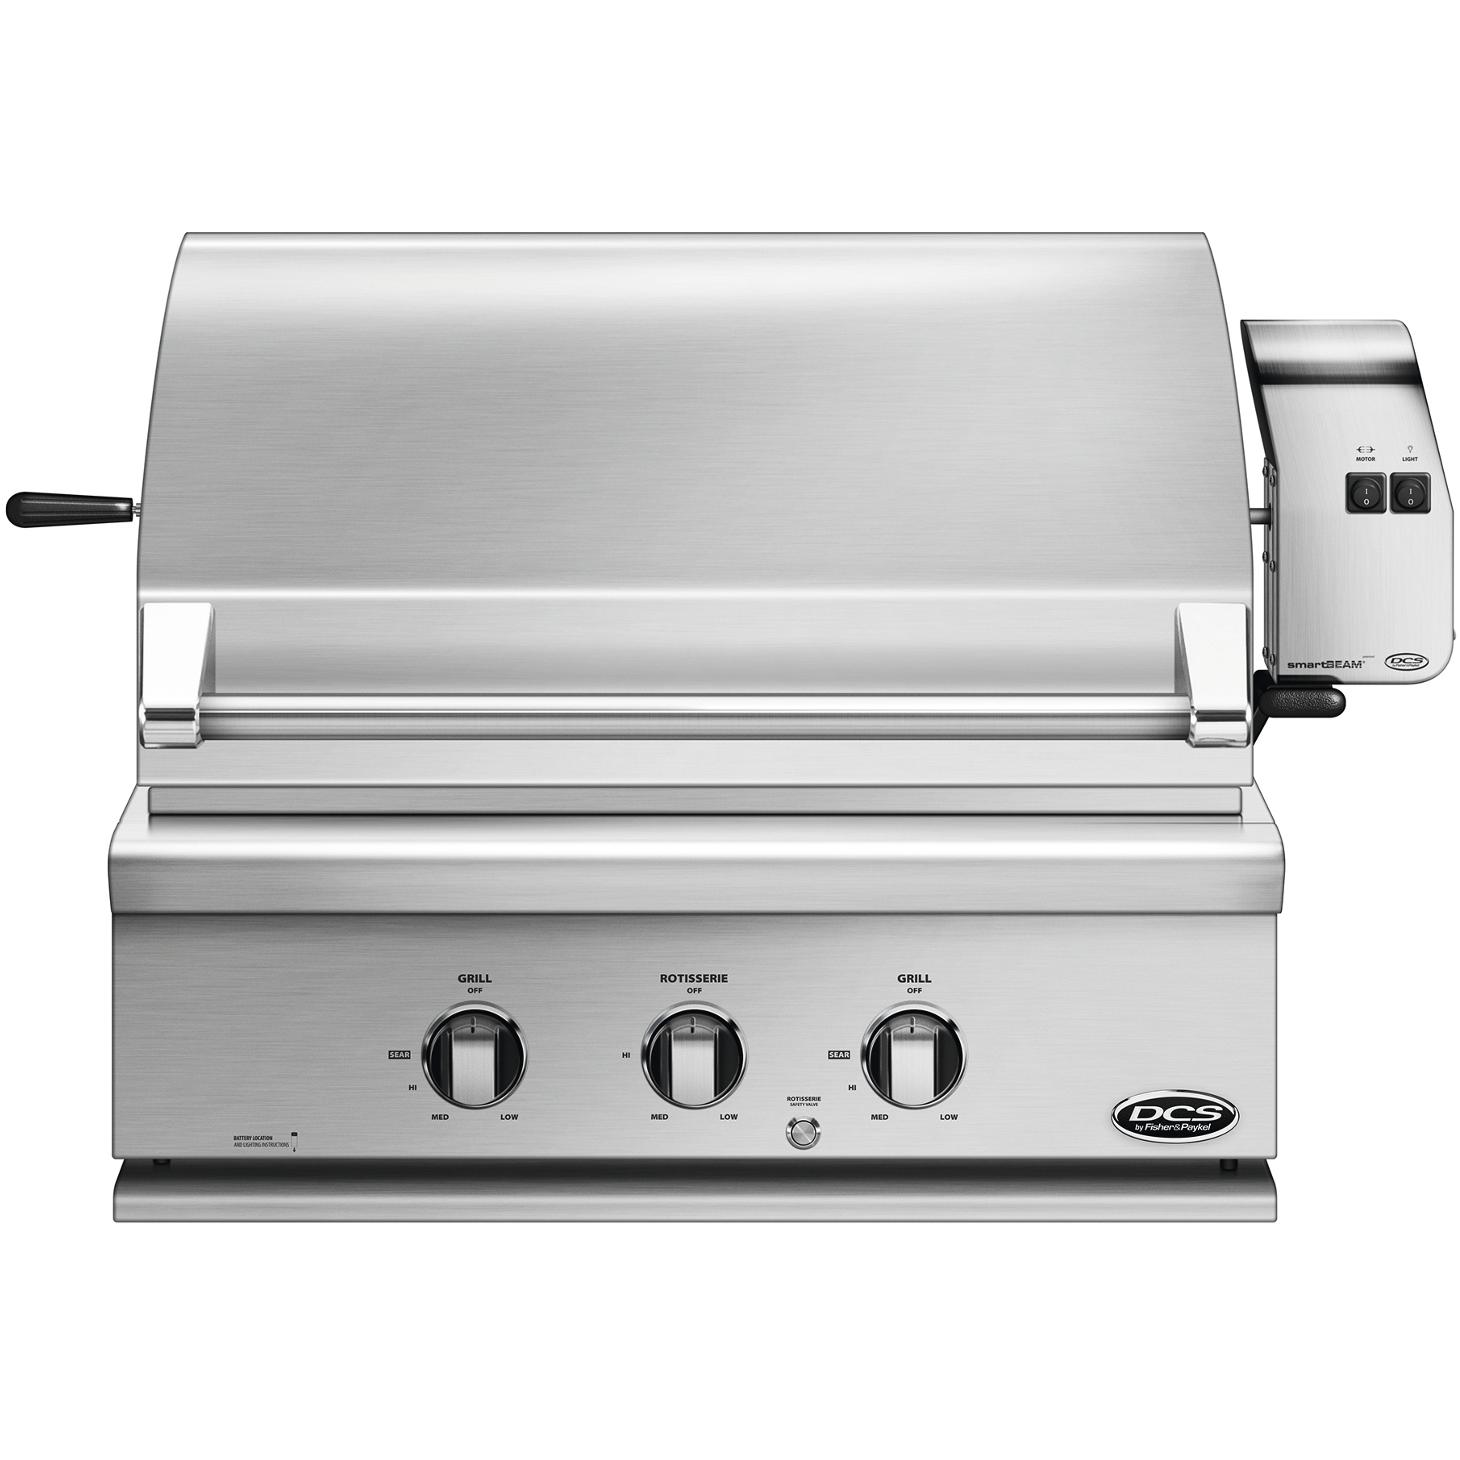 DCS 30-Inch Built-In Natural Gas Grill With Rotisserie - BGC30-BQR-N - 2015 Model 2896592